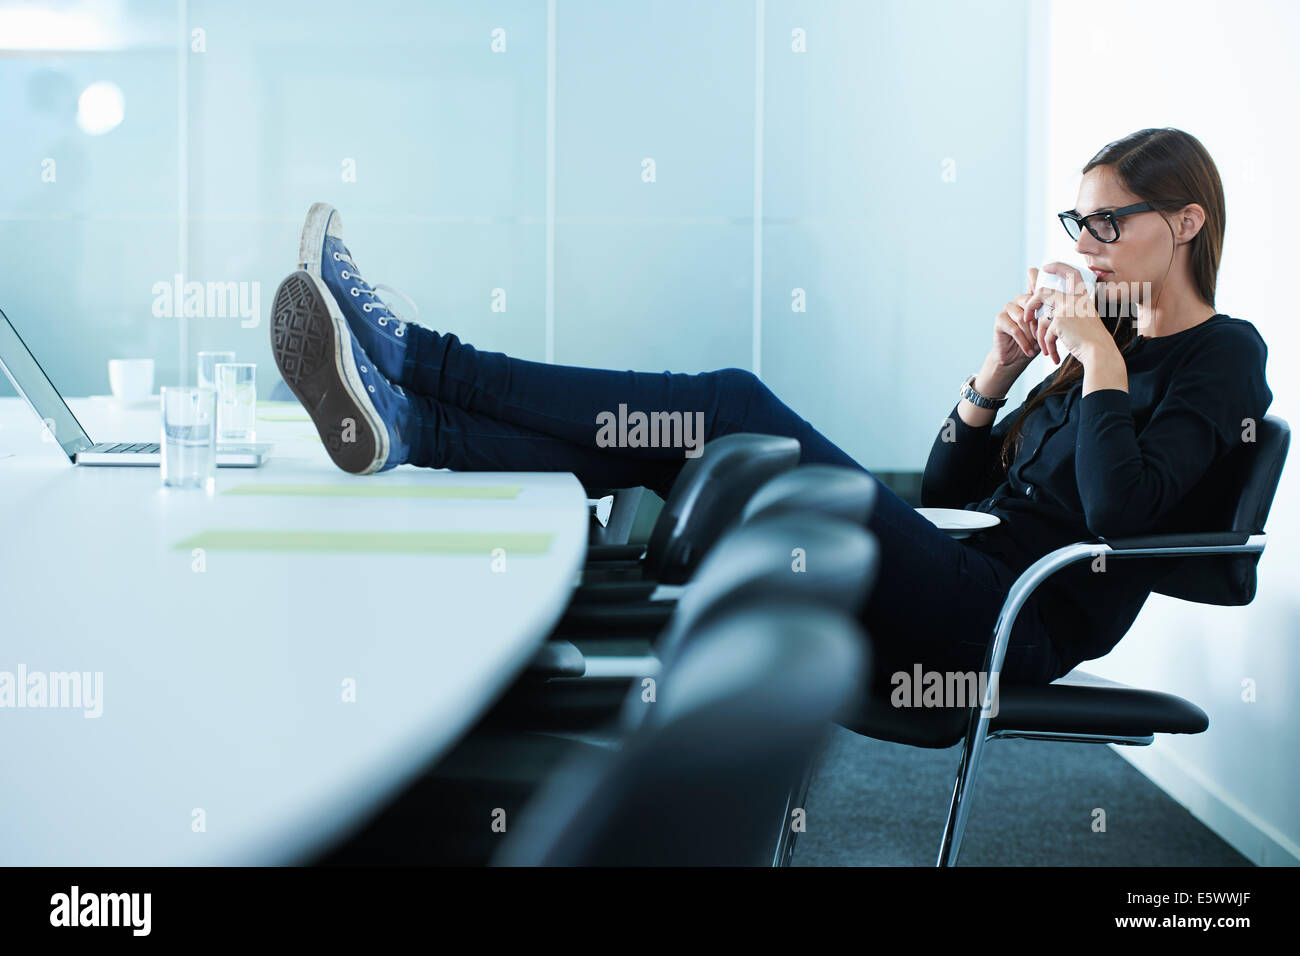 Female office worker drinking coffee with feet up on conference table Stock Photo